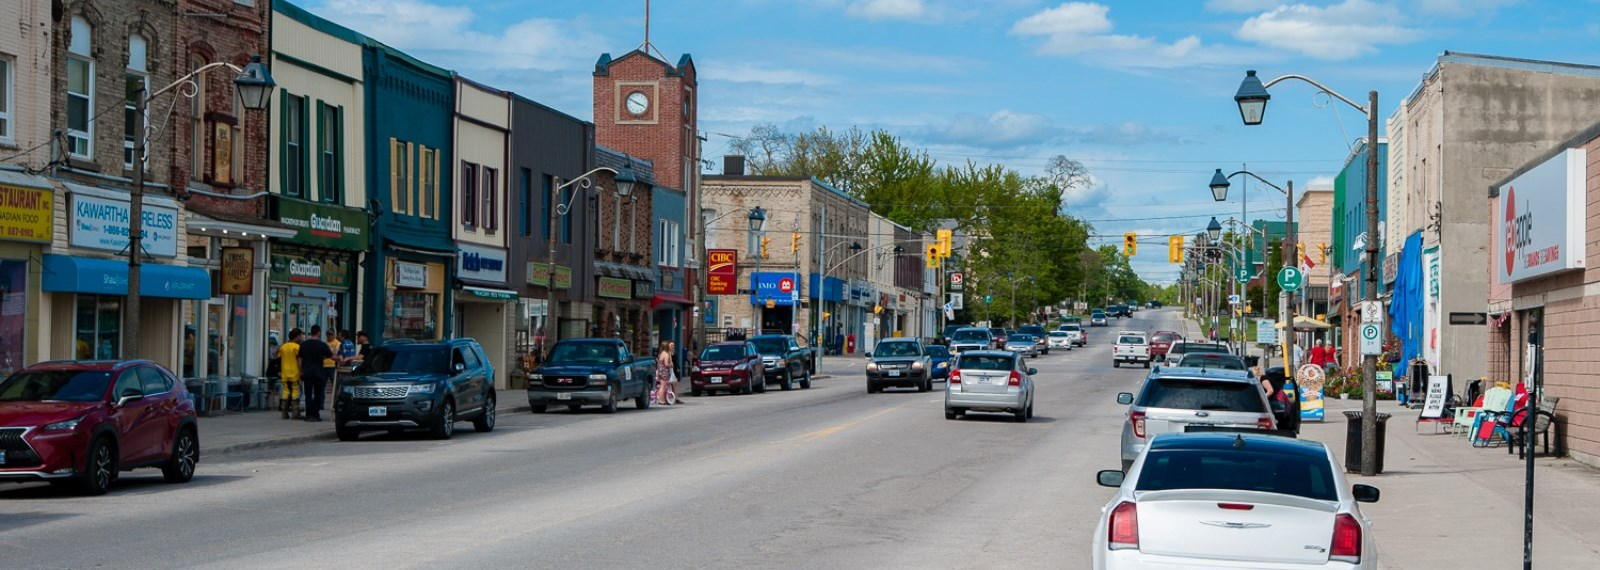 downtown Fenelon Falls